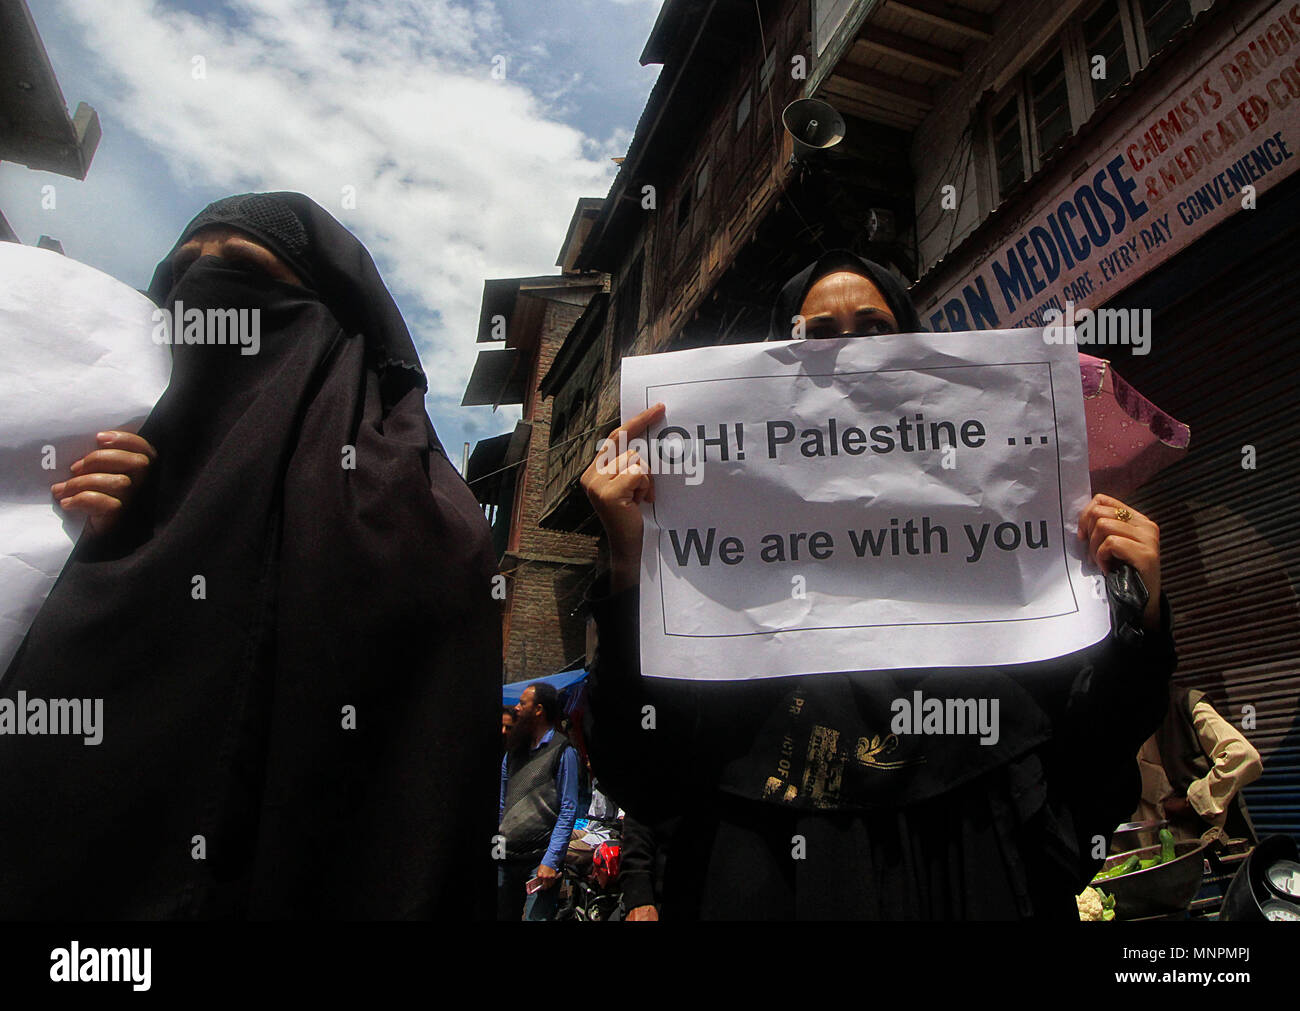 Srinagar, India. 18th May, 2018. Activists and members of Joint Resistance Leadership (JRL) of Kashmir hold placards as they shout anti-Israel slogans during the protest in Srinagar the summer capital of Indian controlled Kashmir on May 18, 2018. More than 60 Palestinian protesters have been killed after Israeli forces opened fire on the Gaza border on May 14, who had assembled alongside the fence to protest against the moving of United State's embassy from Tel Aviv to Jerusalem. Credit: Faisal Khan/Pacific Press/Alamy Live News - Stock Image